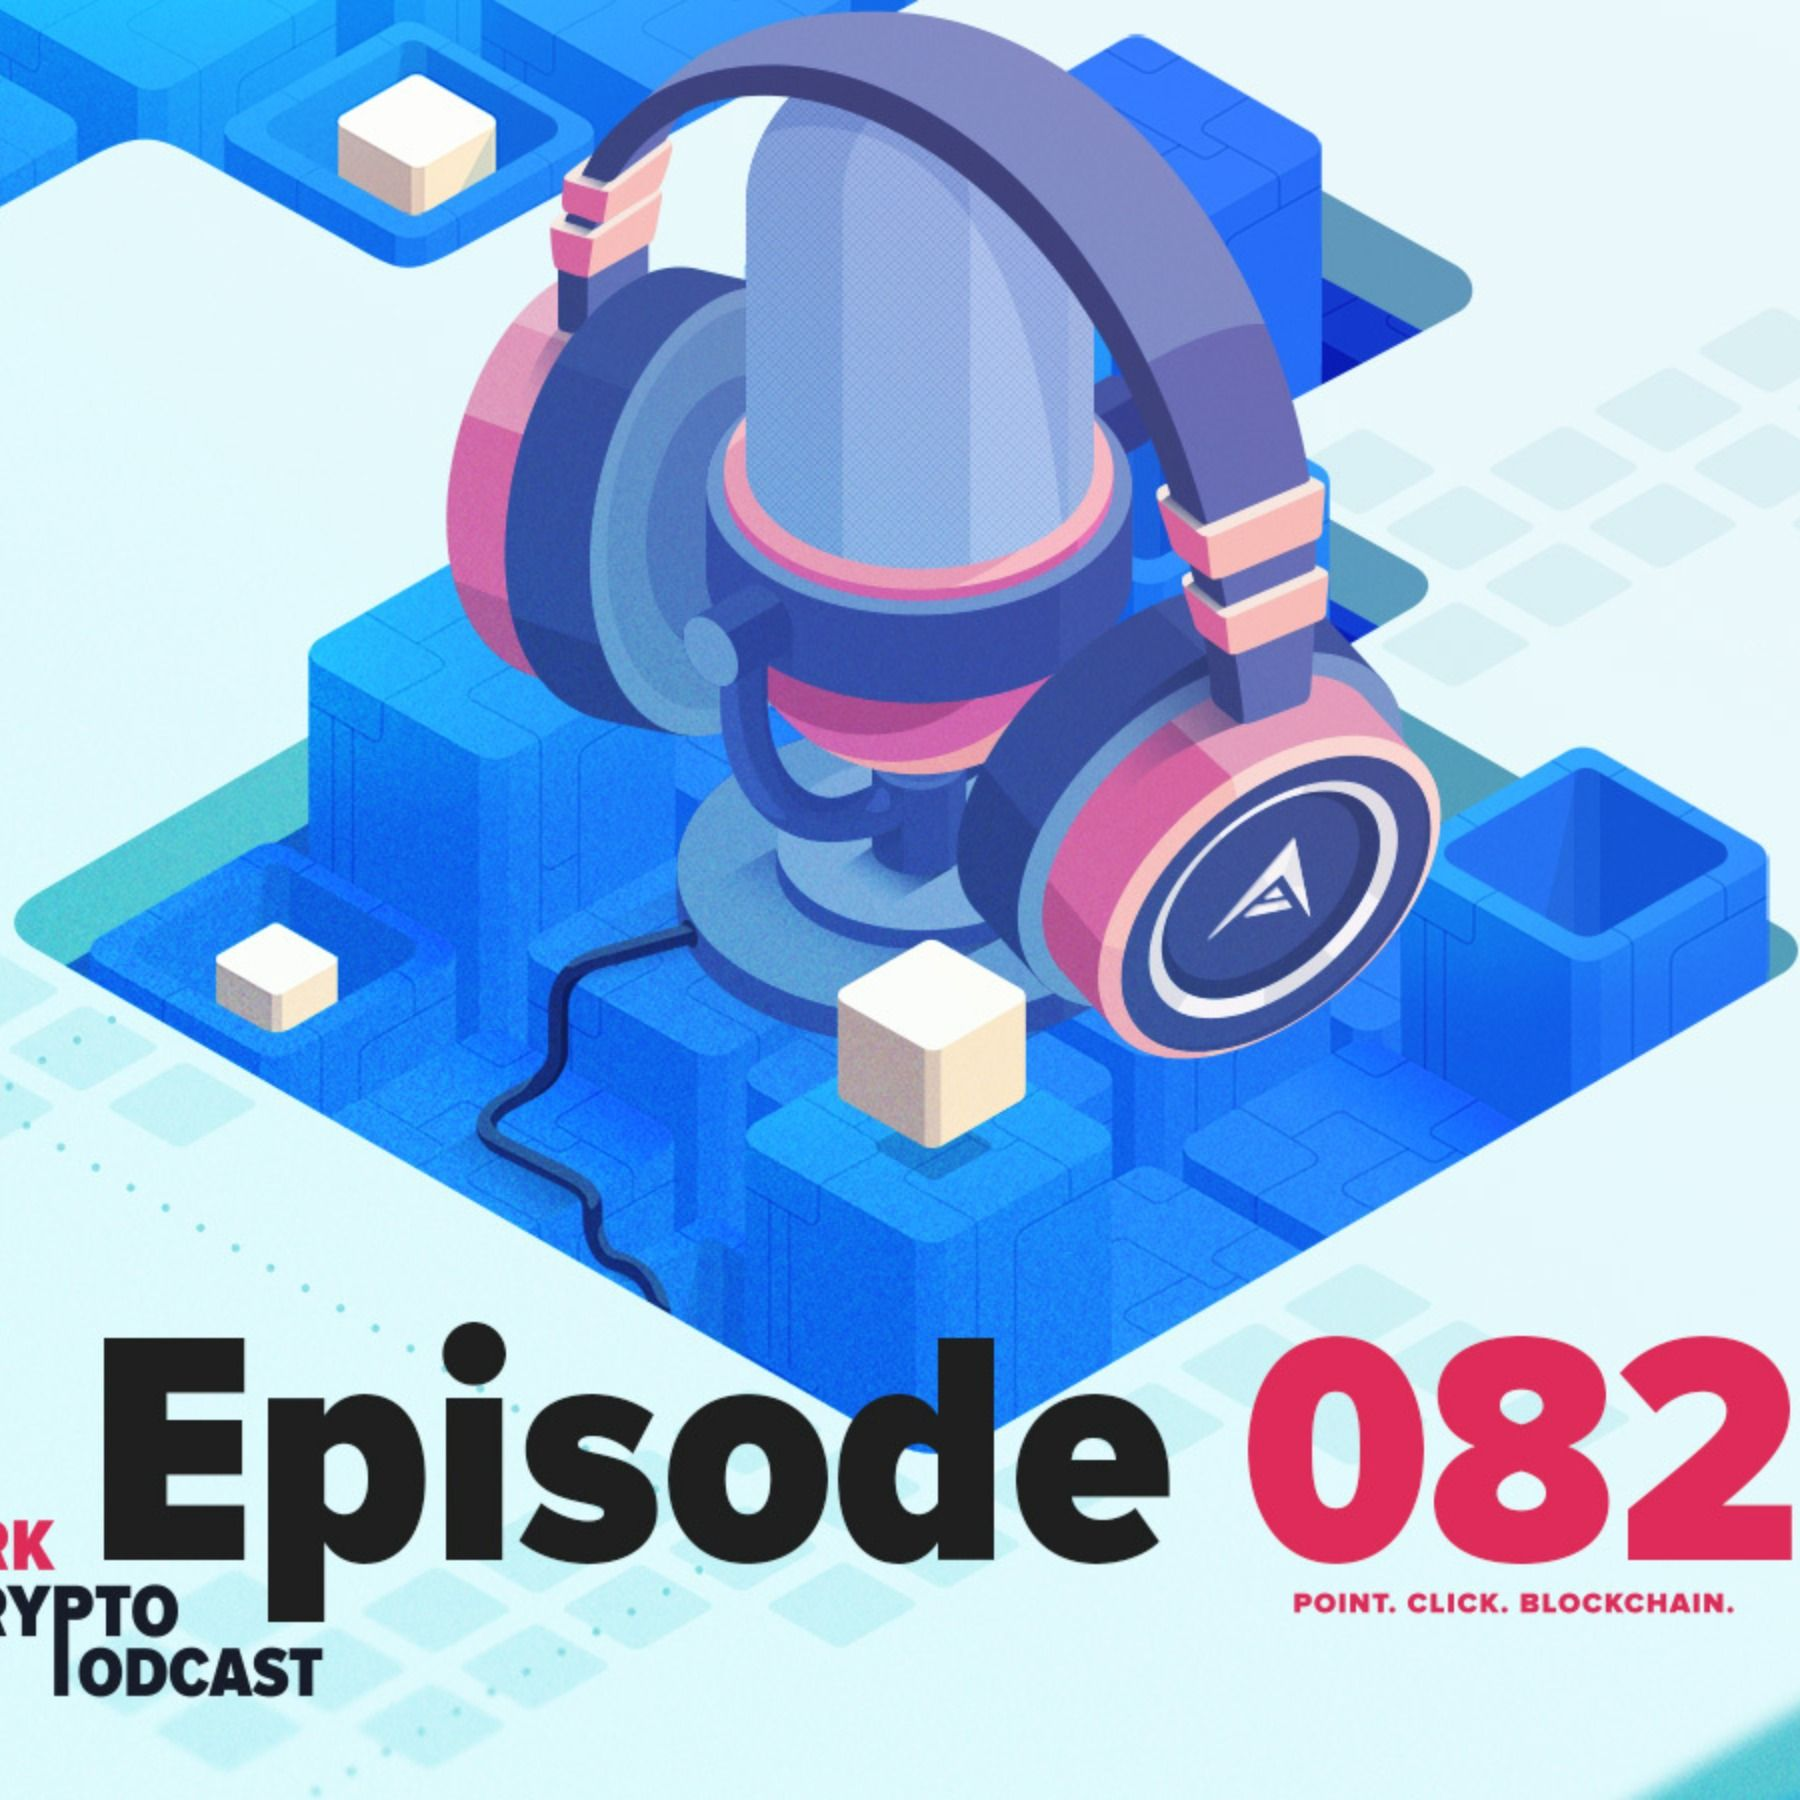 ARK.io Monthly Update June 2020 - ARK Crypto Podcast #082